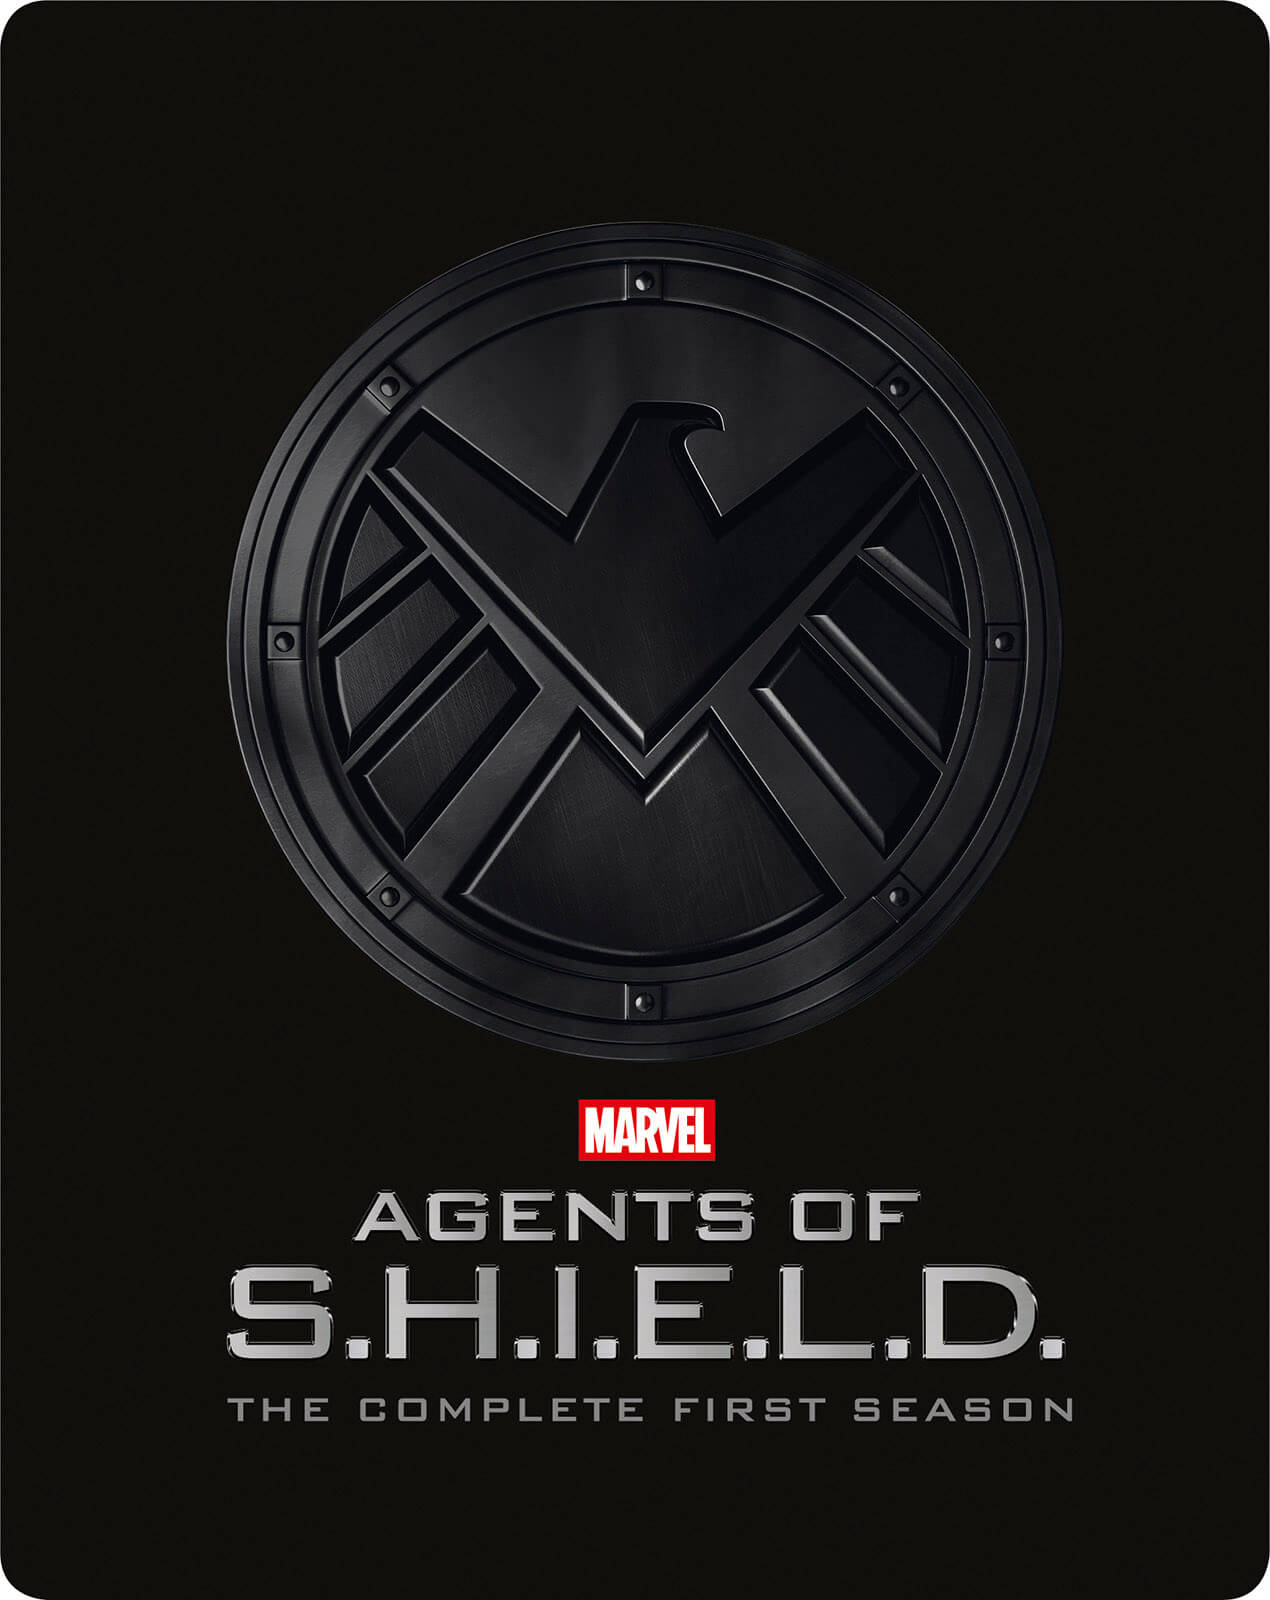 Marvel Agents of S H I E L D The Complete First Season - Zavvi Exclusive  SteelBook